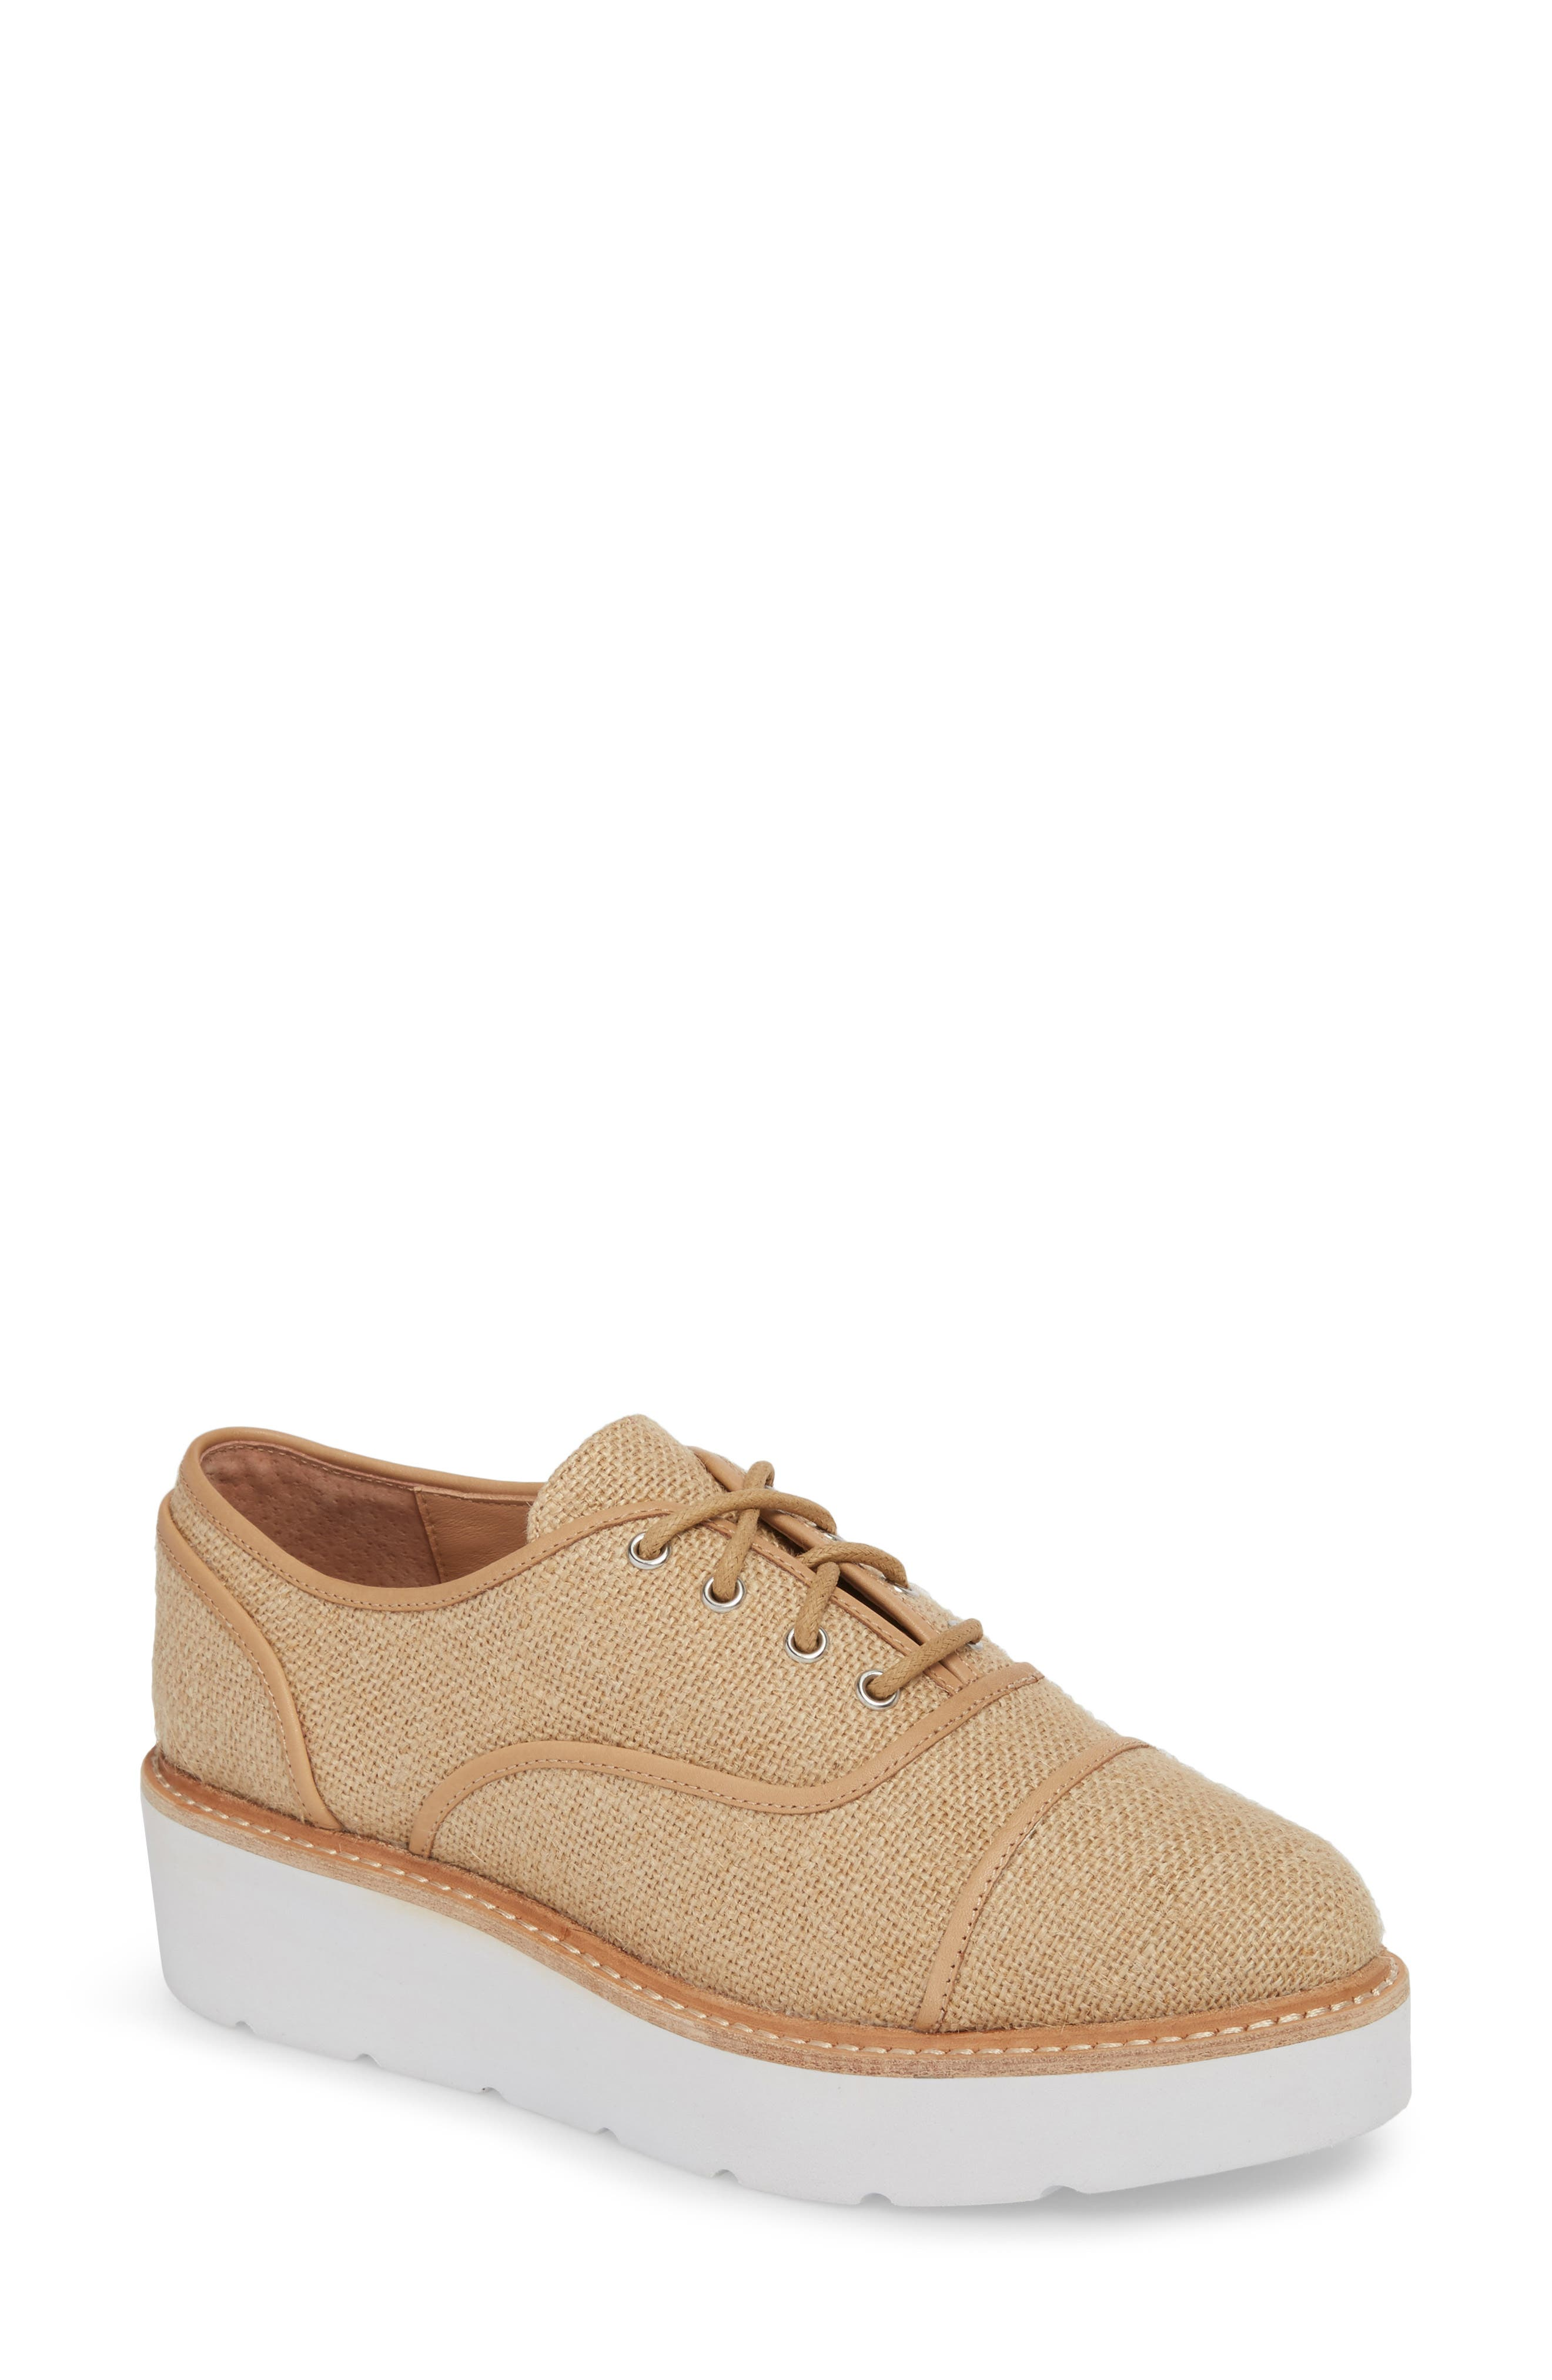 Mavis Cap Toe Platform Sneaker,                         Main,                         color, 250